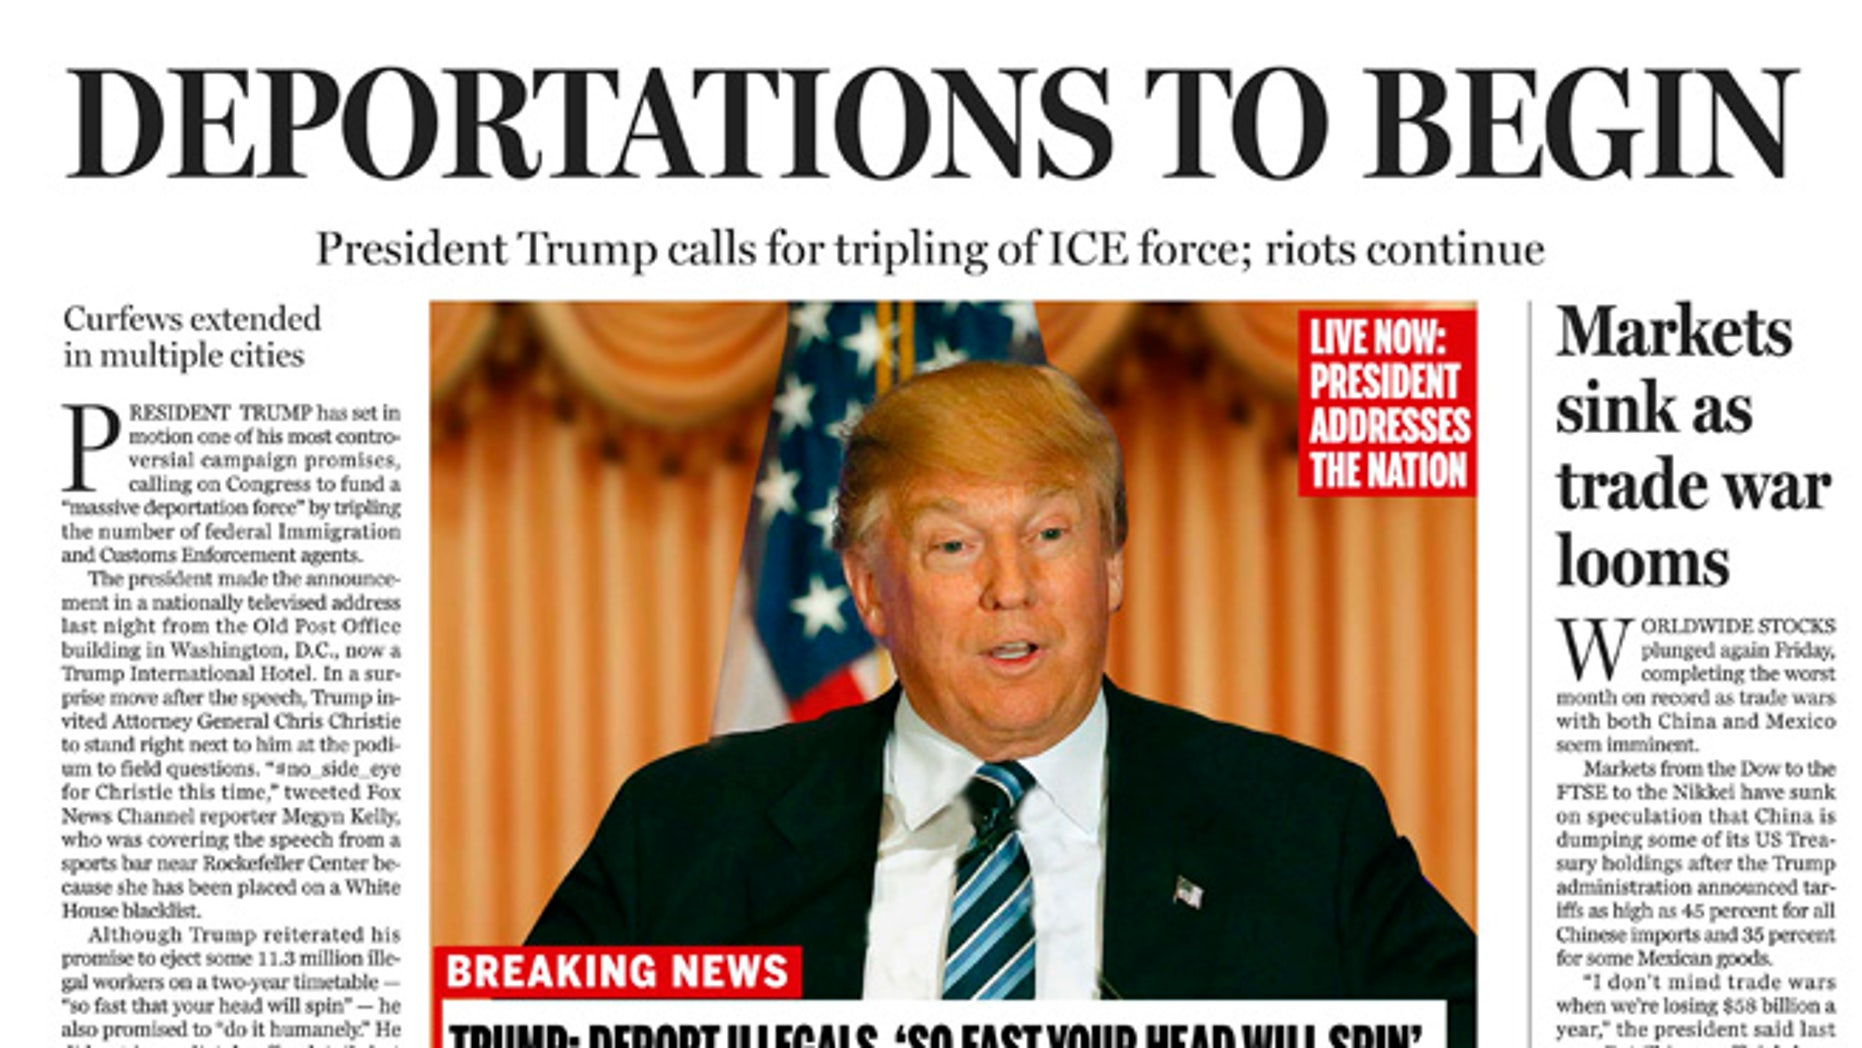 A portion of a satirical front page of The Boston Globe published on Saturday, April 9, 2016.